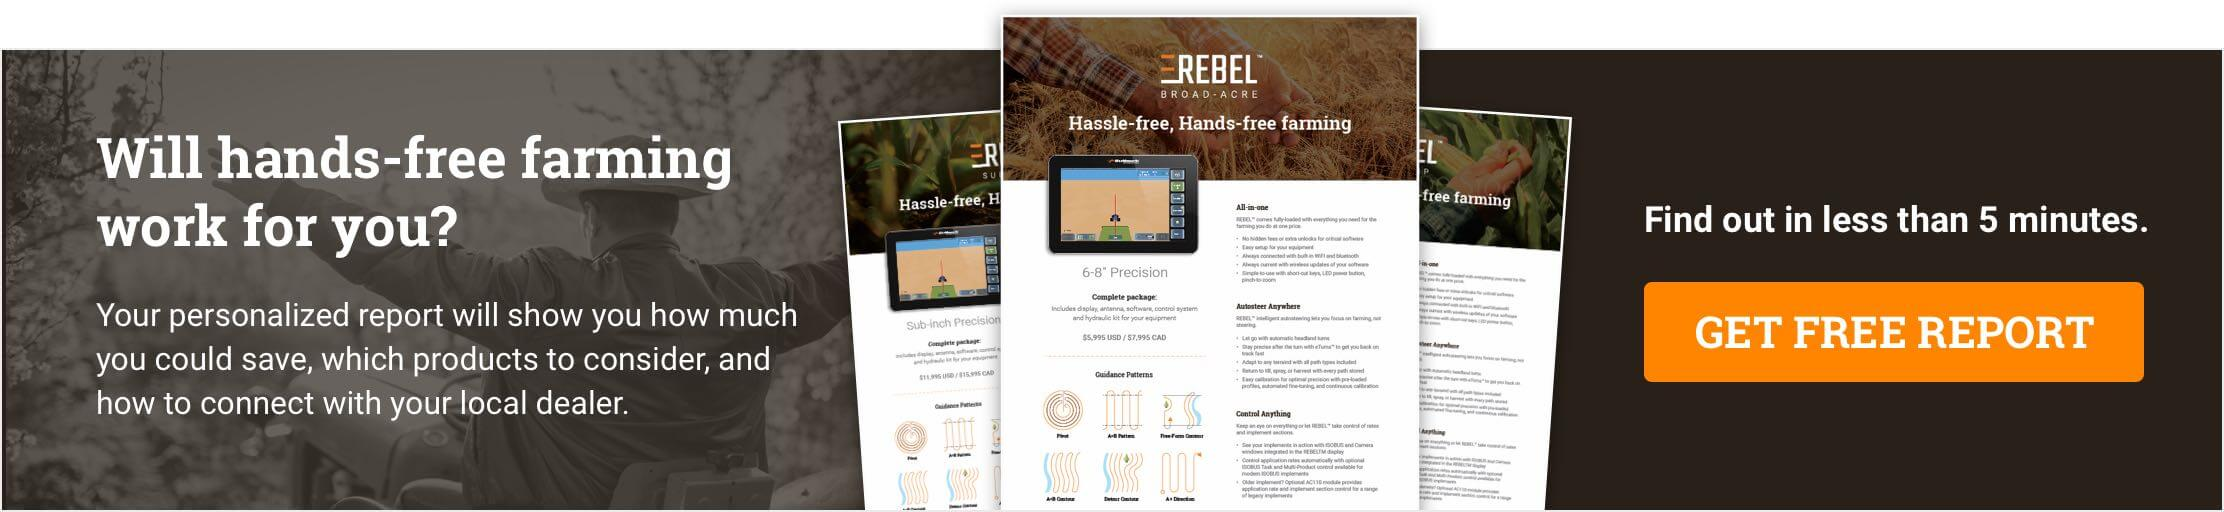 Will hands-free farming work for you? Find out.